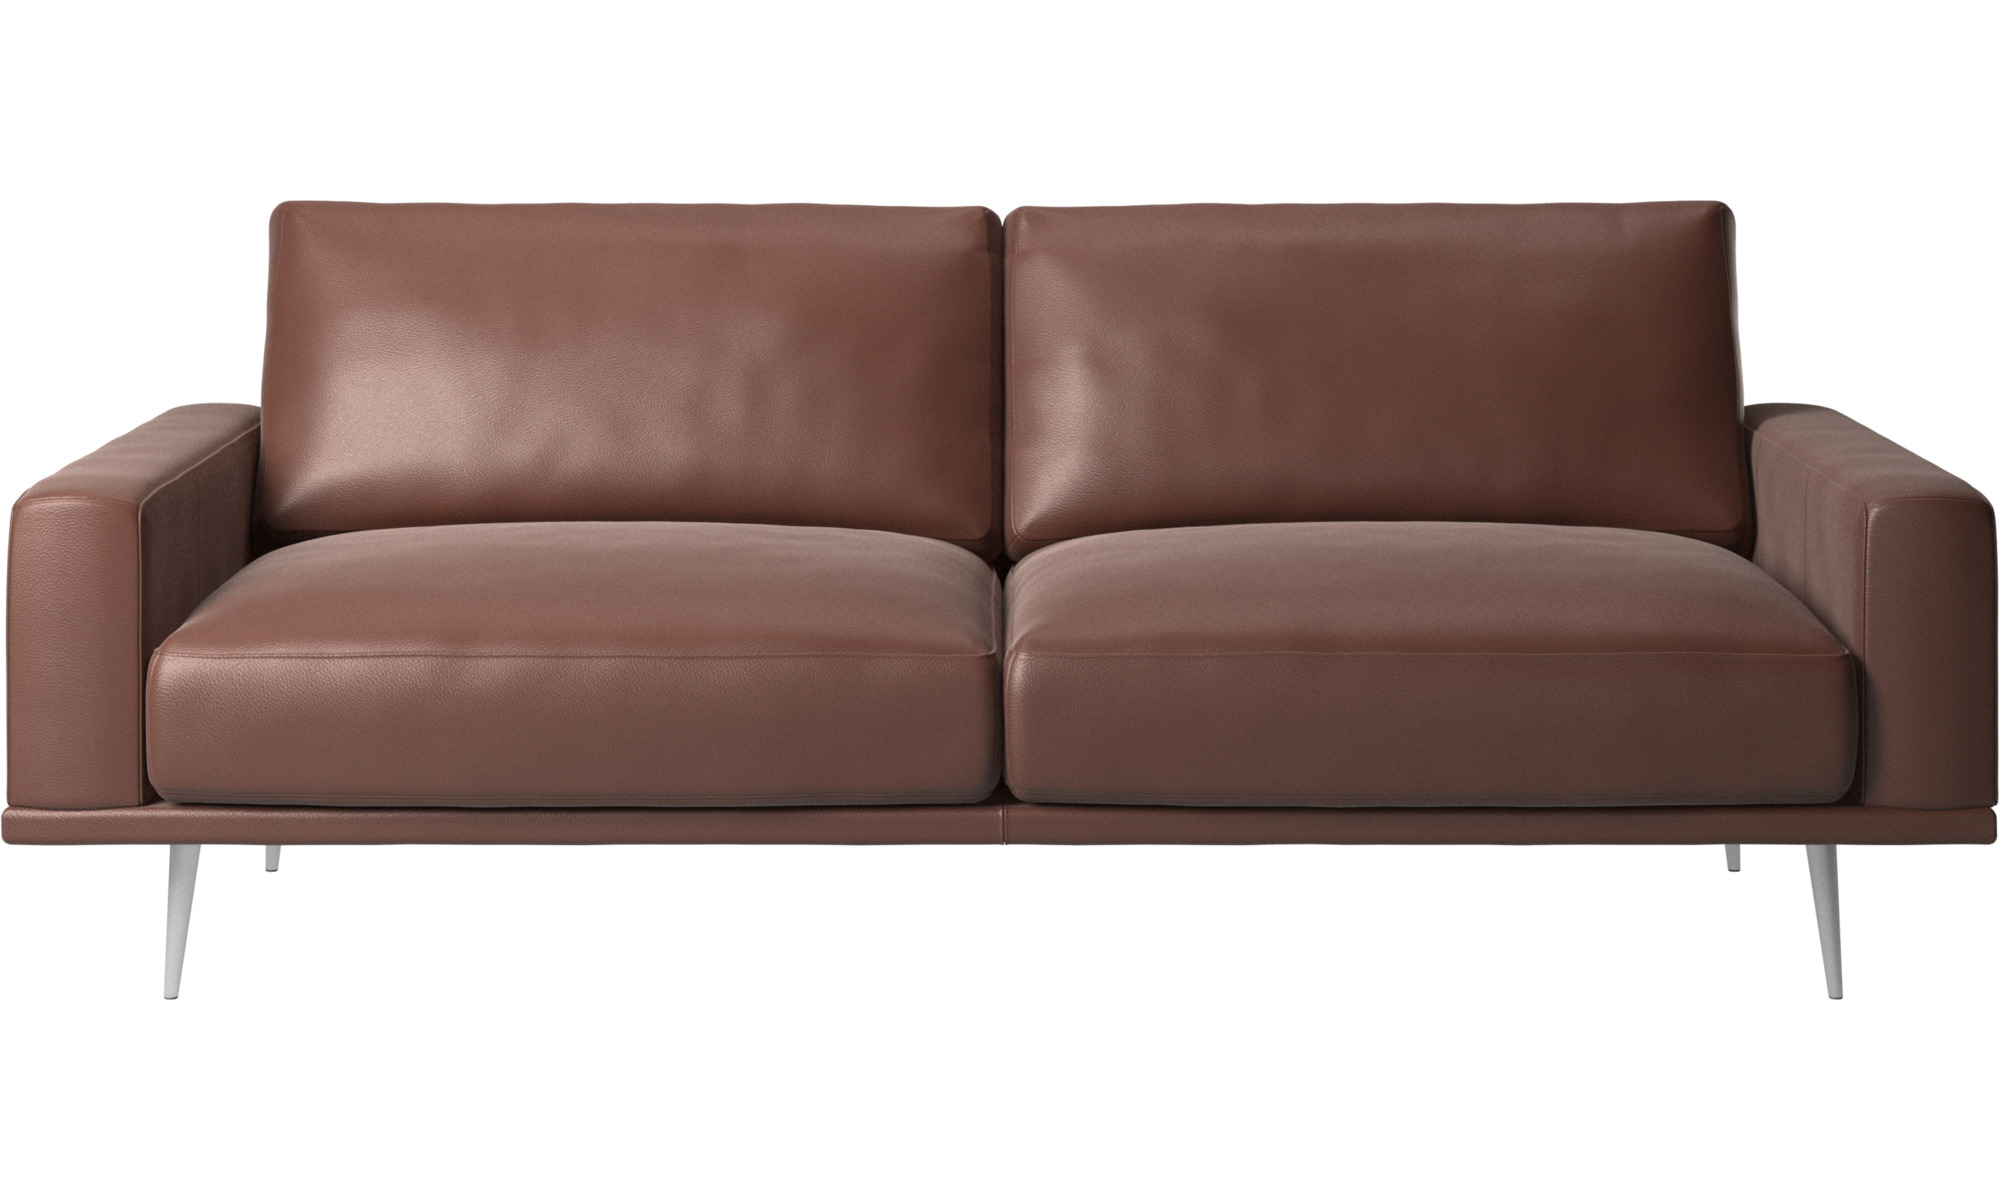 2 5 seater sofas carlton sofa boconcept for Canape poltrone et sofa